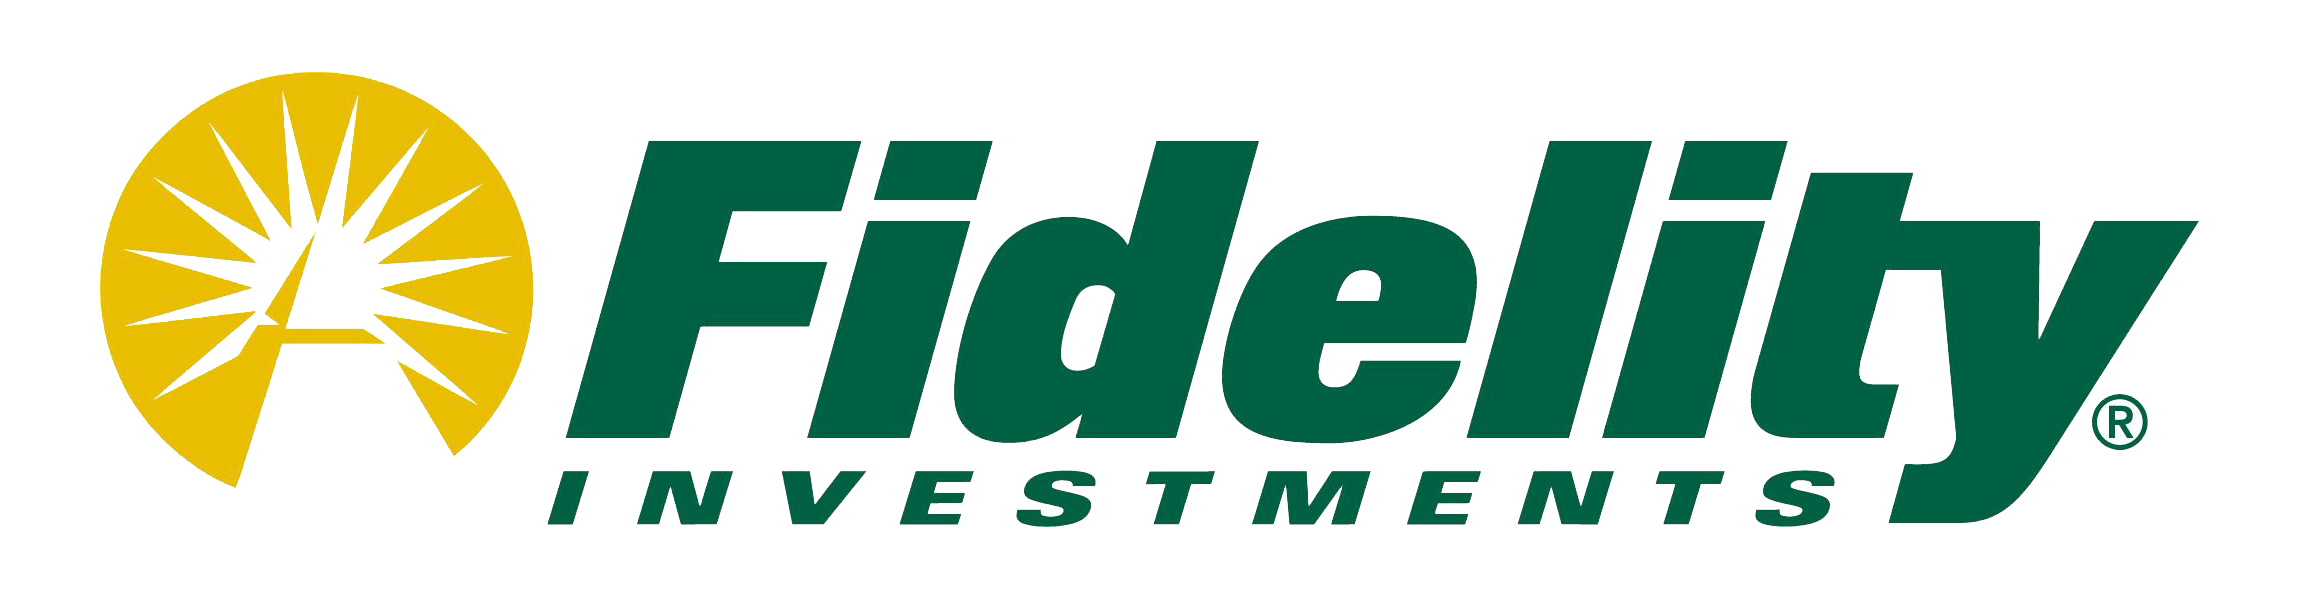 Fidelity Investments.jpg